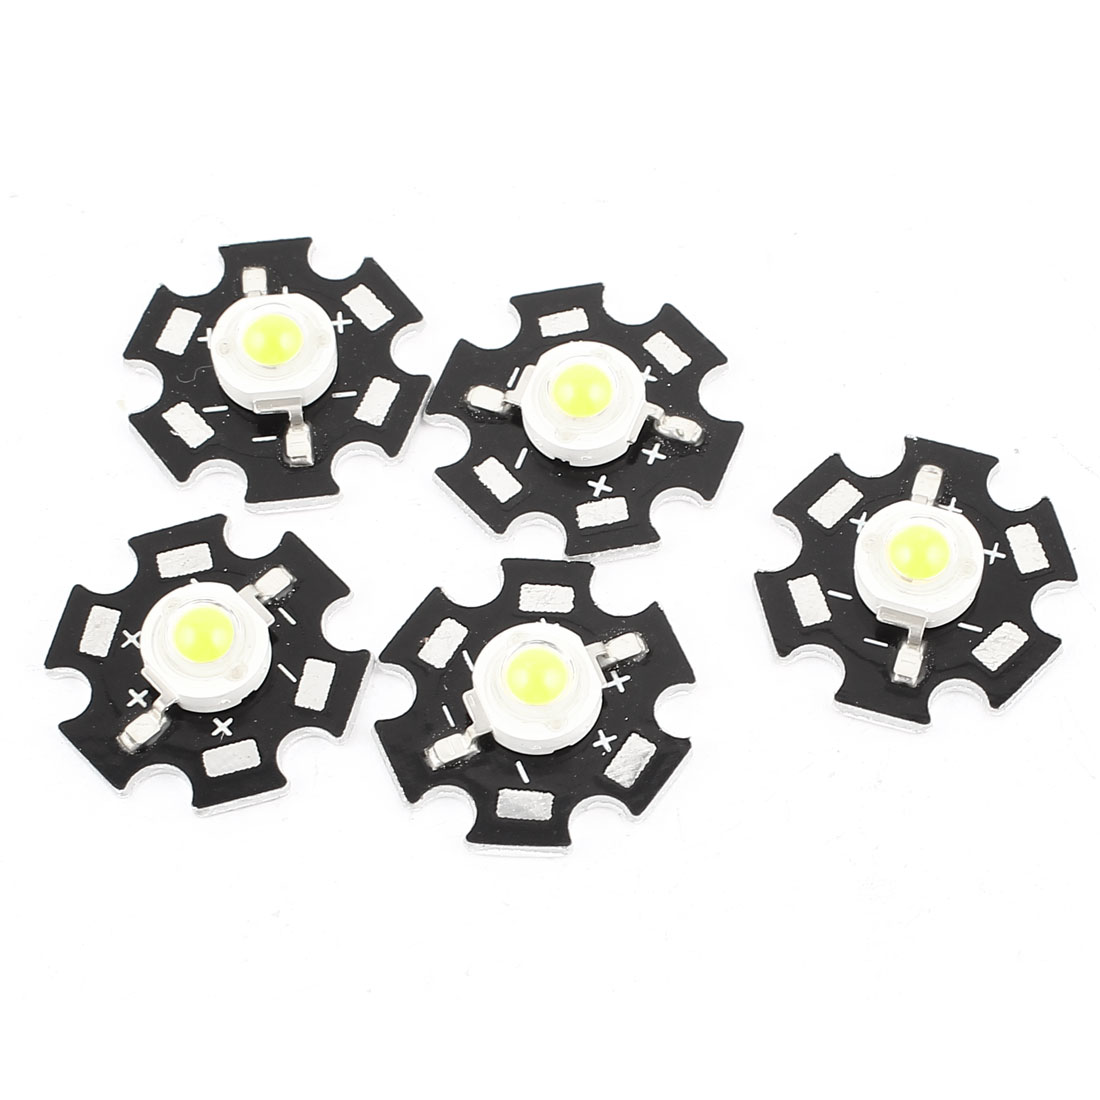 5pcs 1W 3.0-3.6V 350mA 90LM Pure White LED Bead Emitter 20mm Star Platine Heatsink